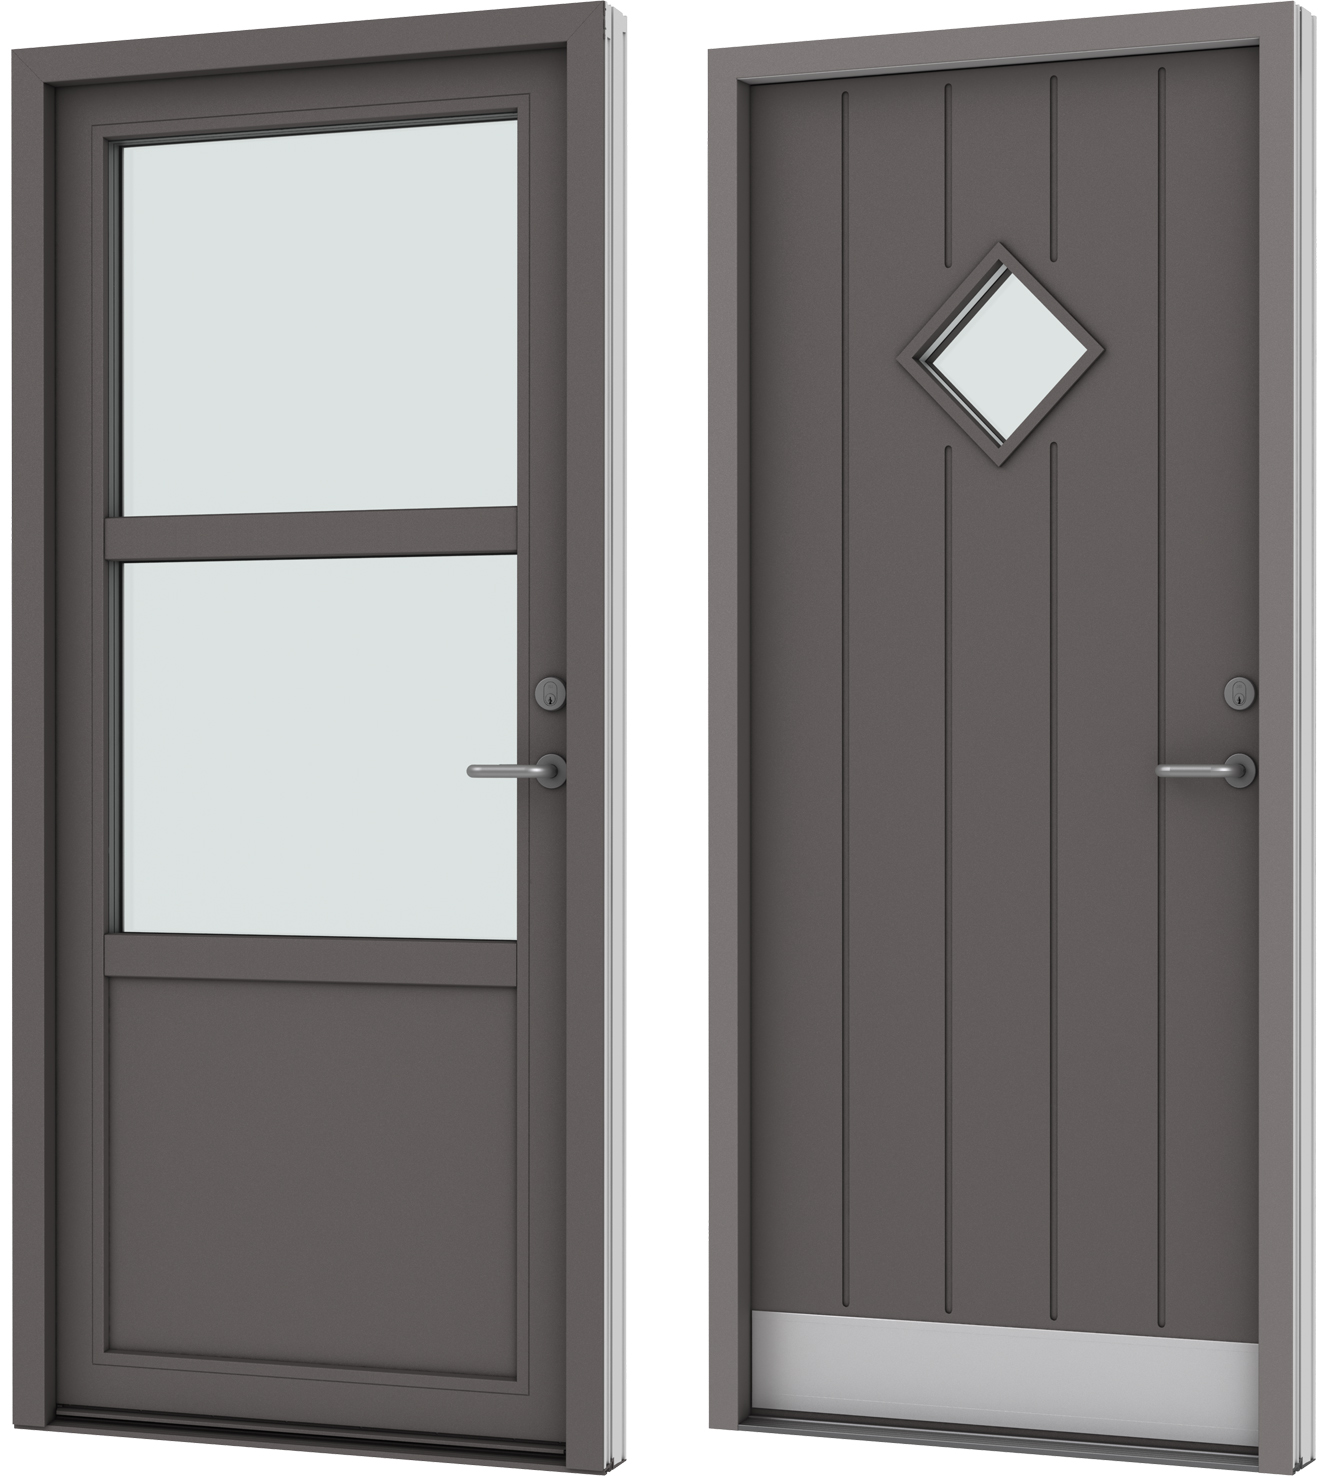 Velfac Ribo Entrance Doors